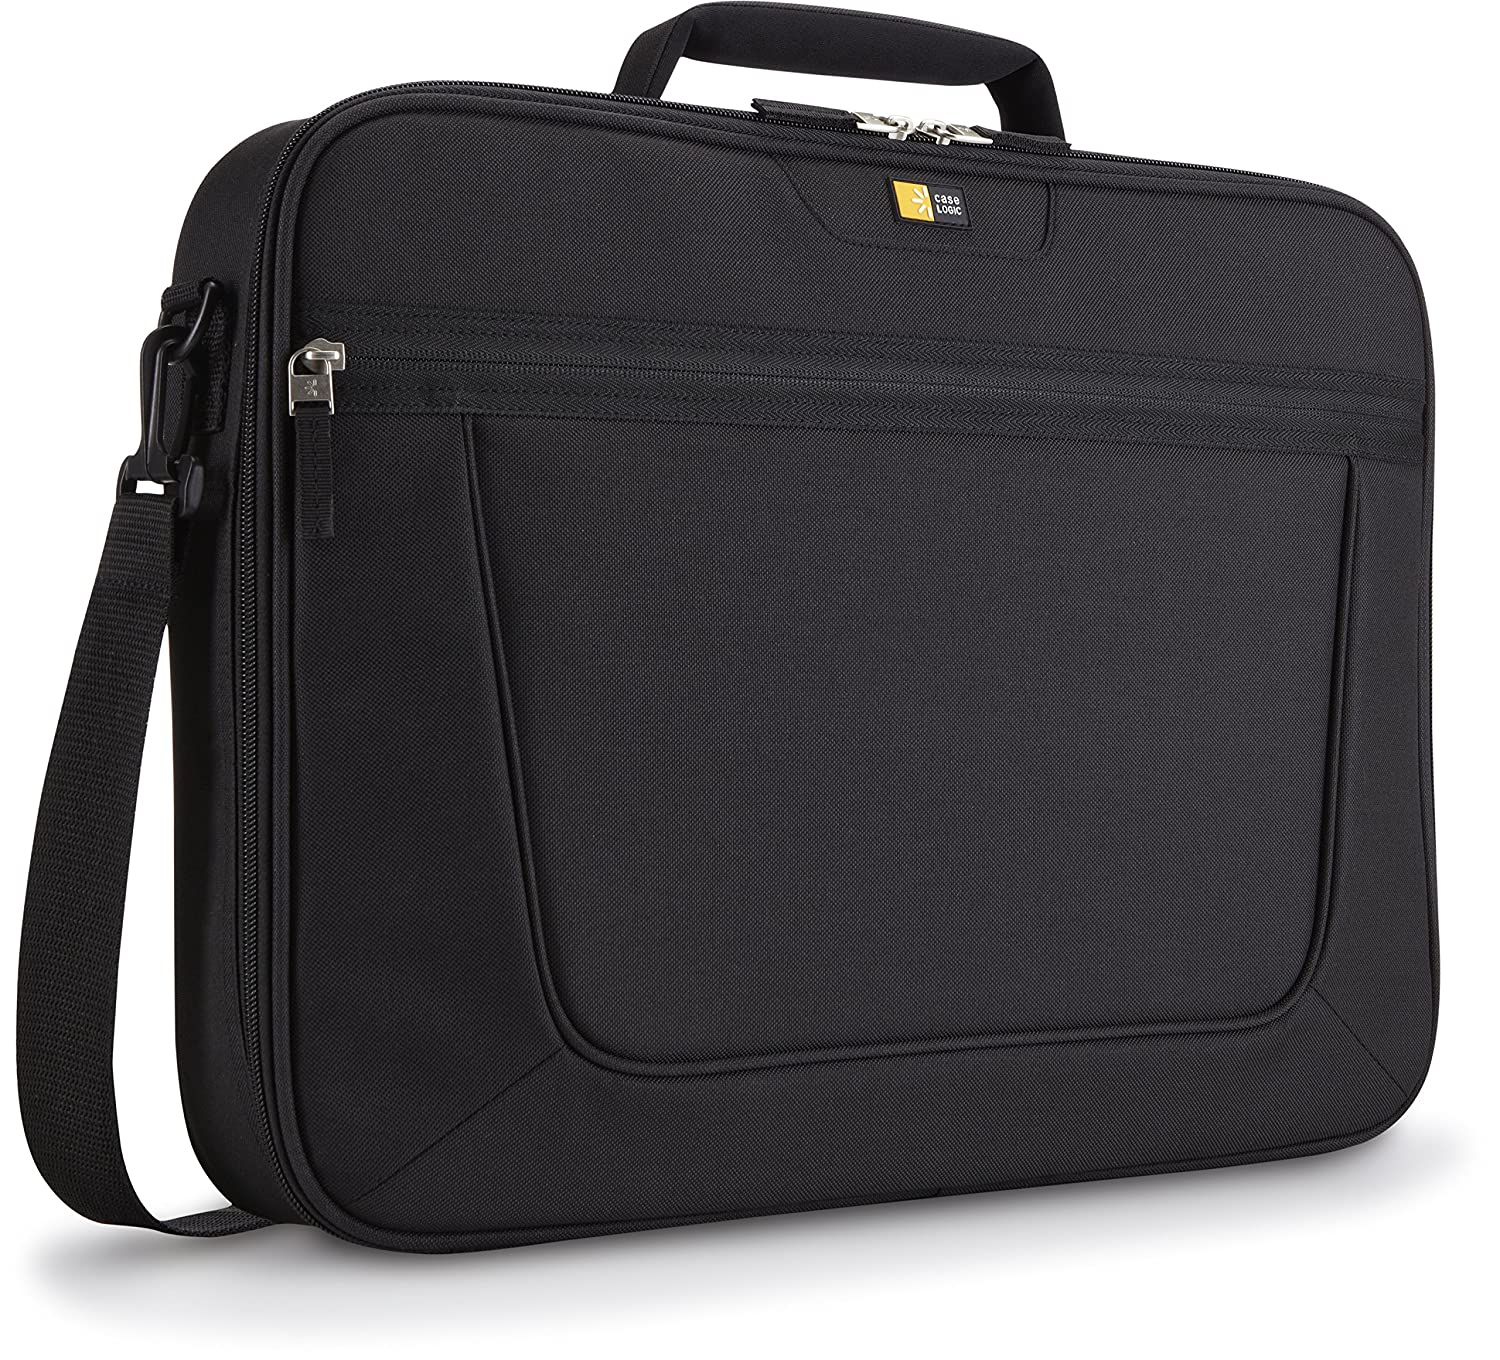 Case Logic 15.6 Inch Laptop Case